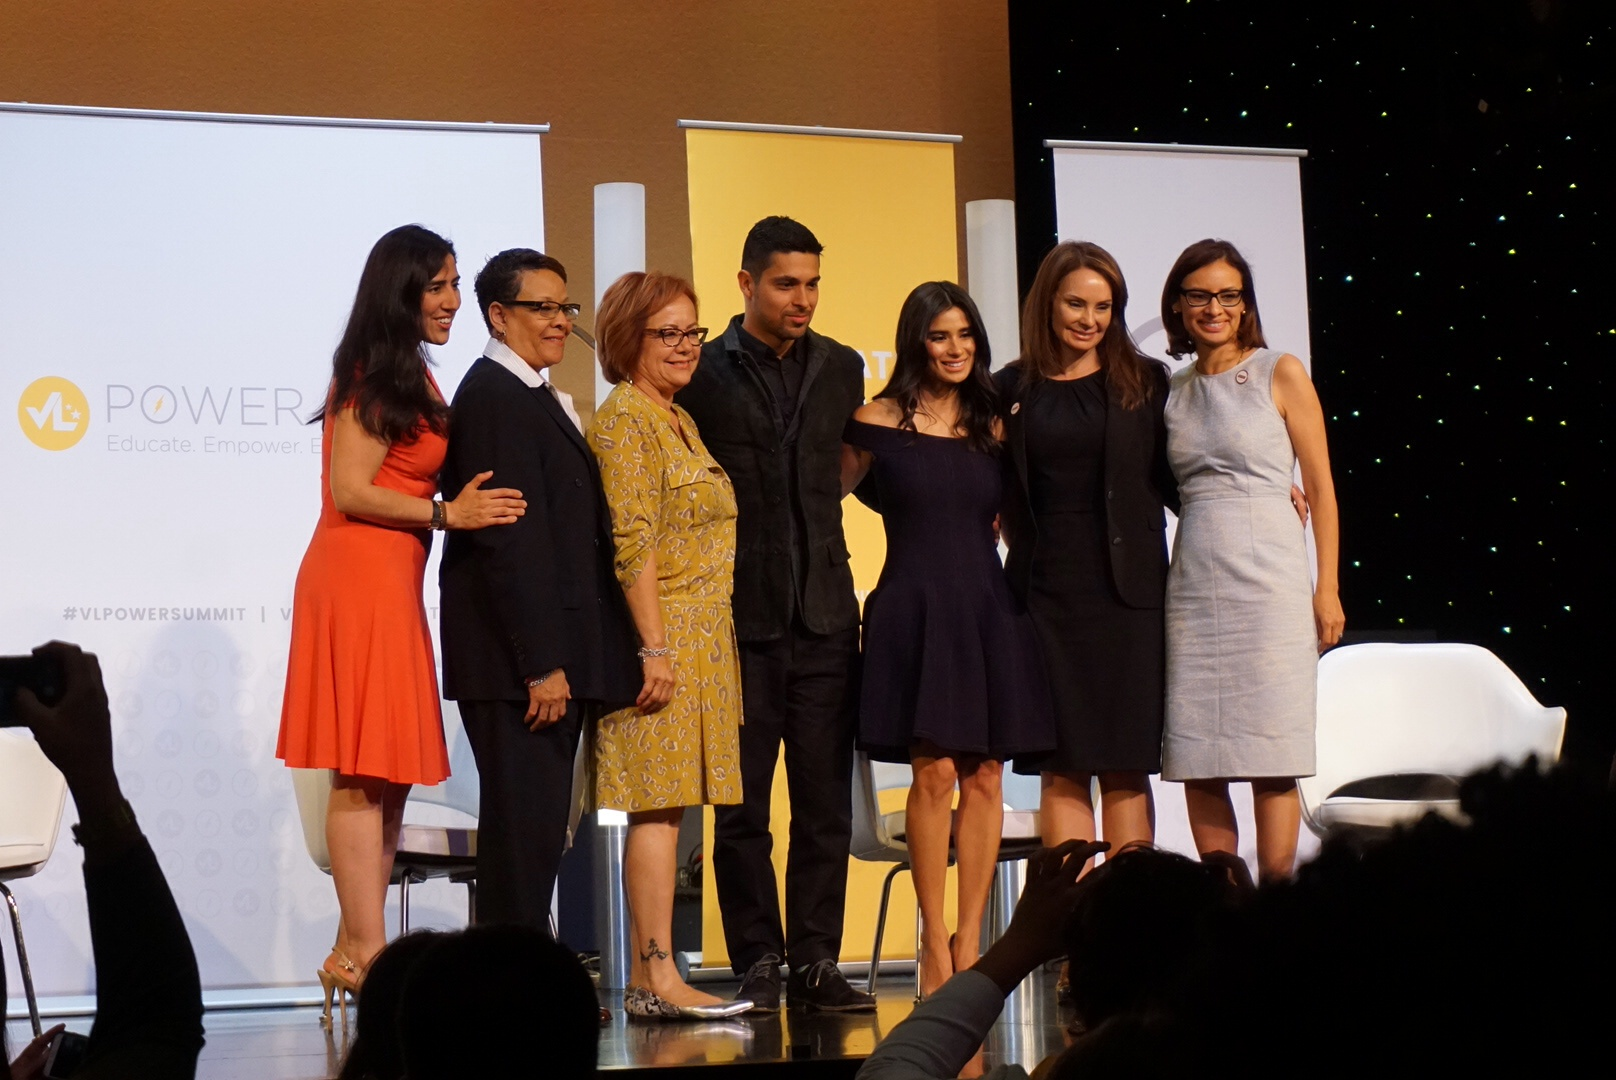 Inspiring panels throughout the weekend touched on issues affecting Latinos most.